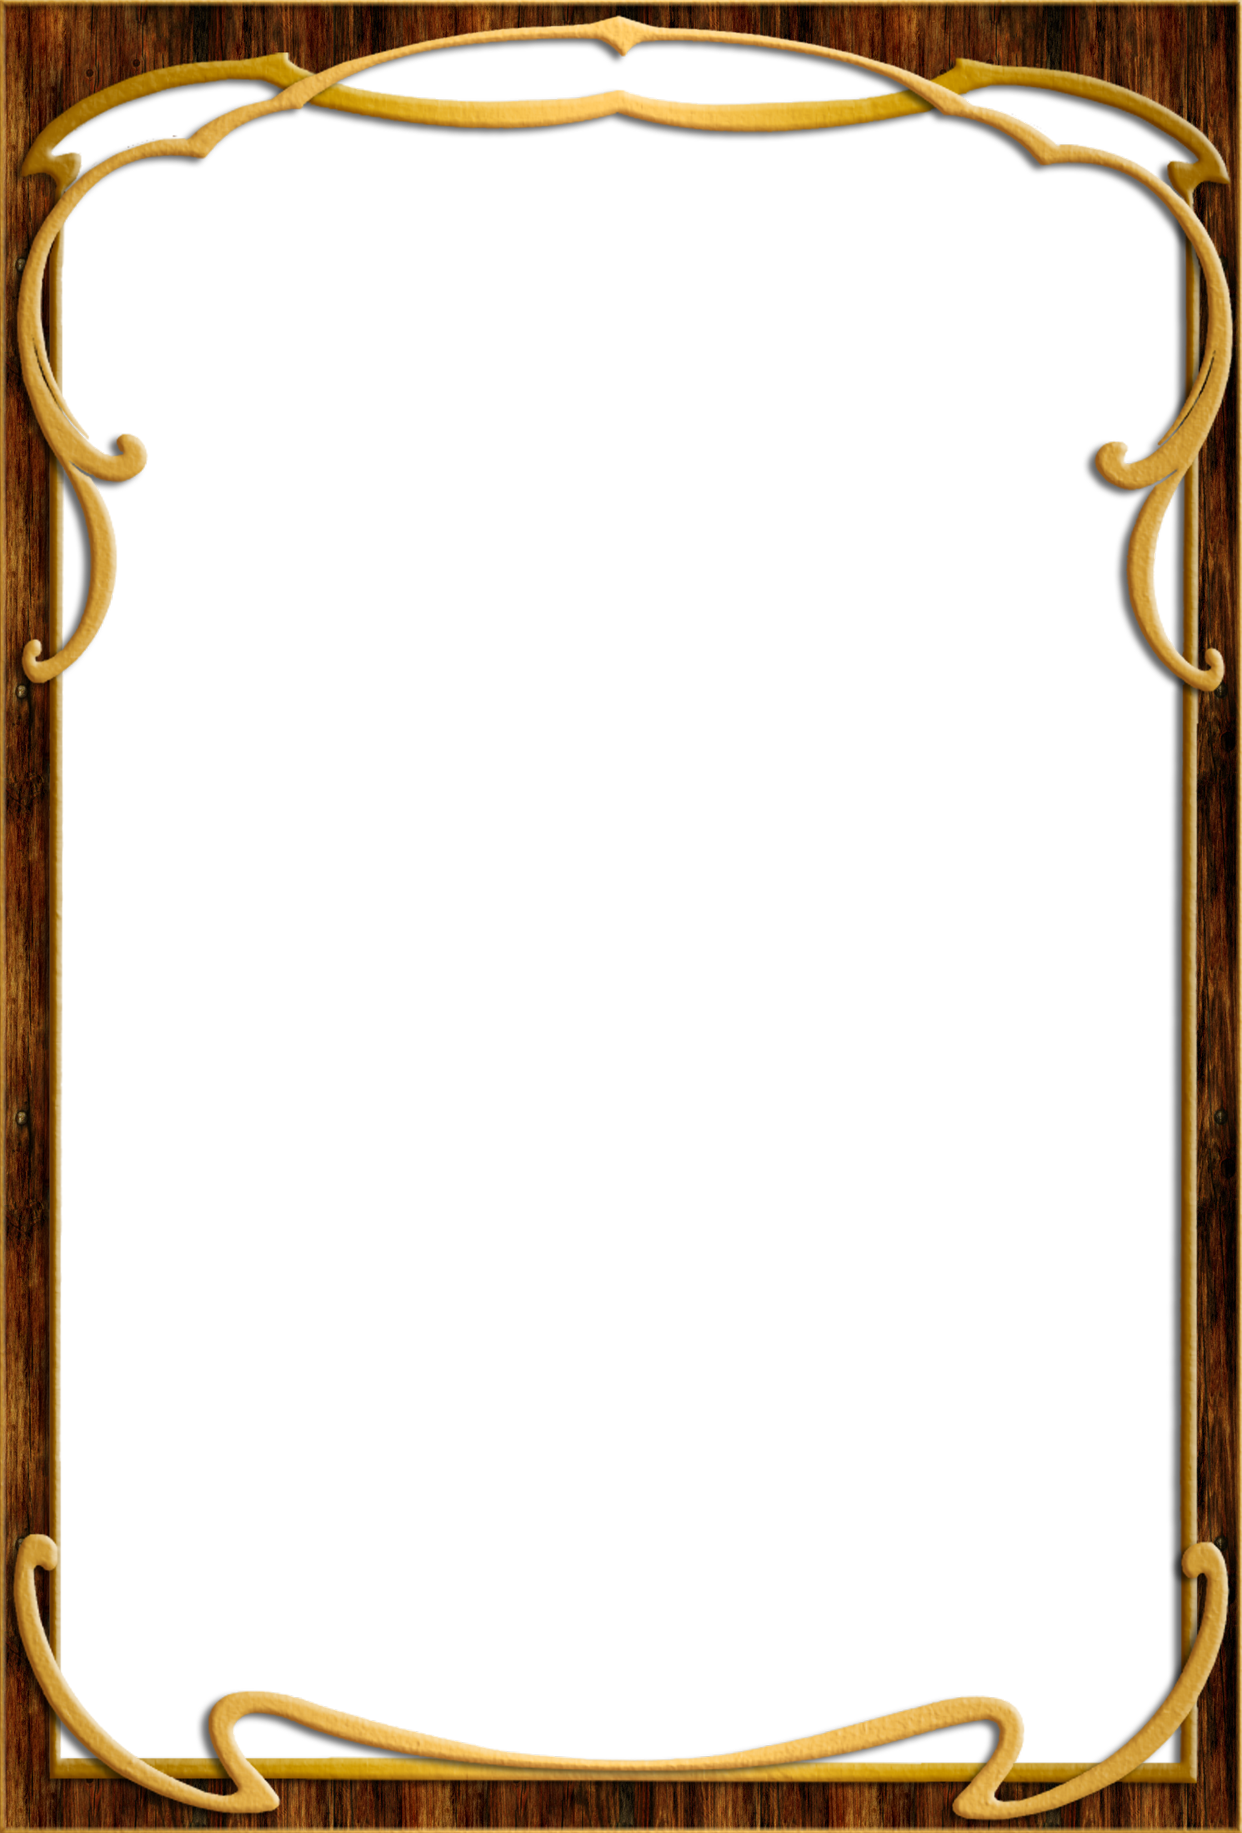 Frames png. Http pngimagesfree com photo